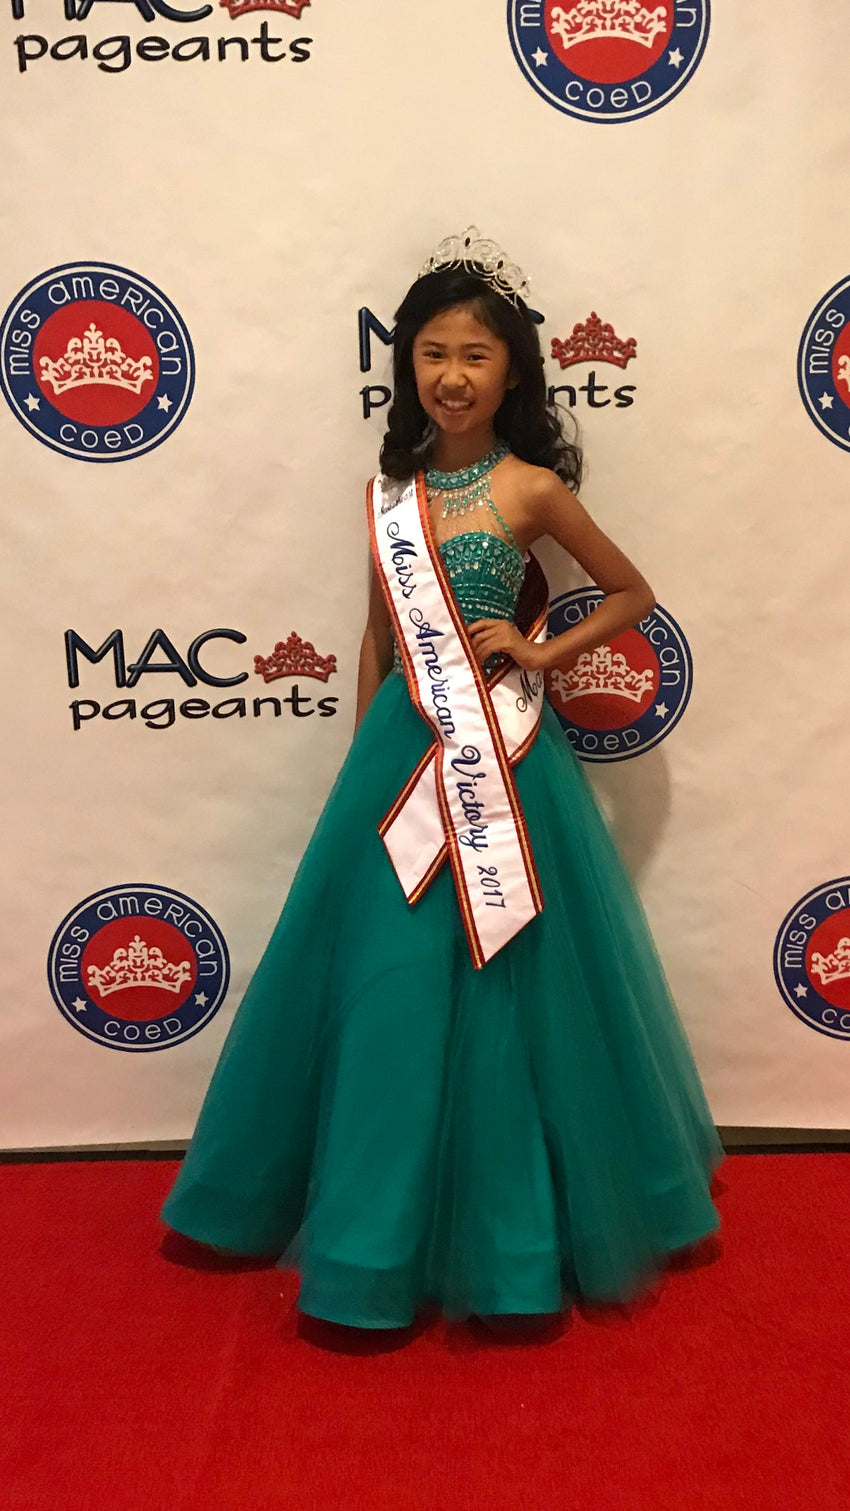 2017 Miss American CoEd National Victory Sweetheart